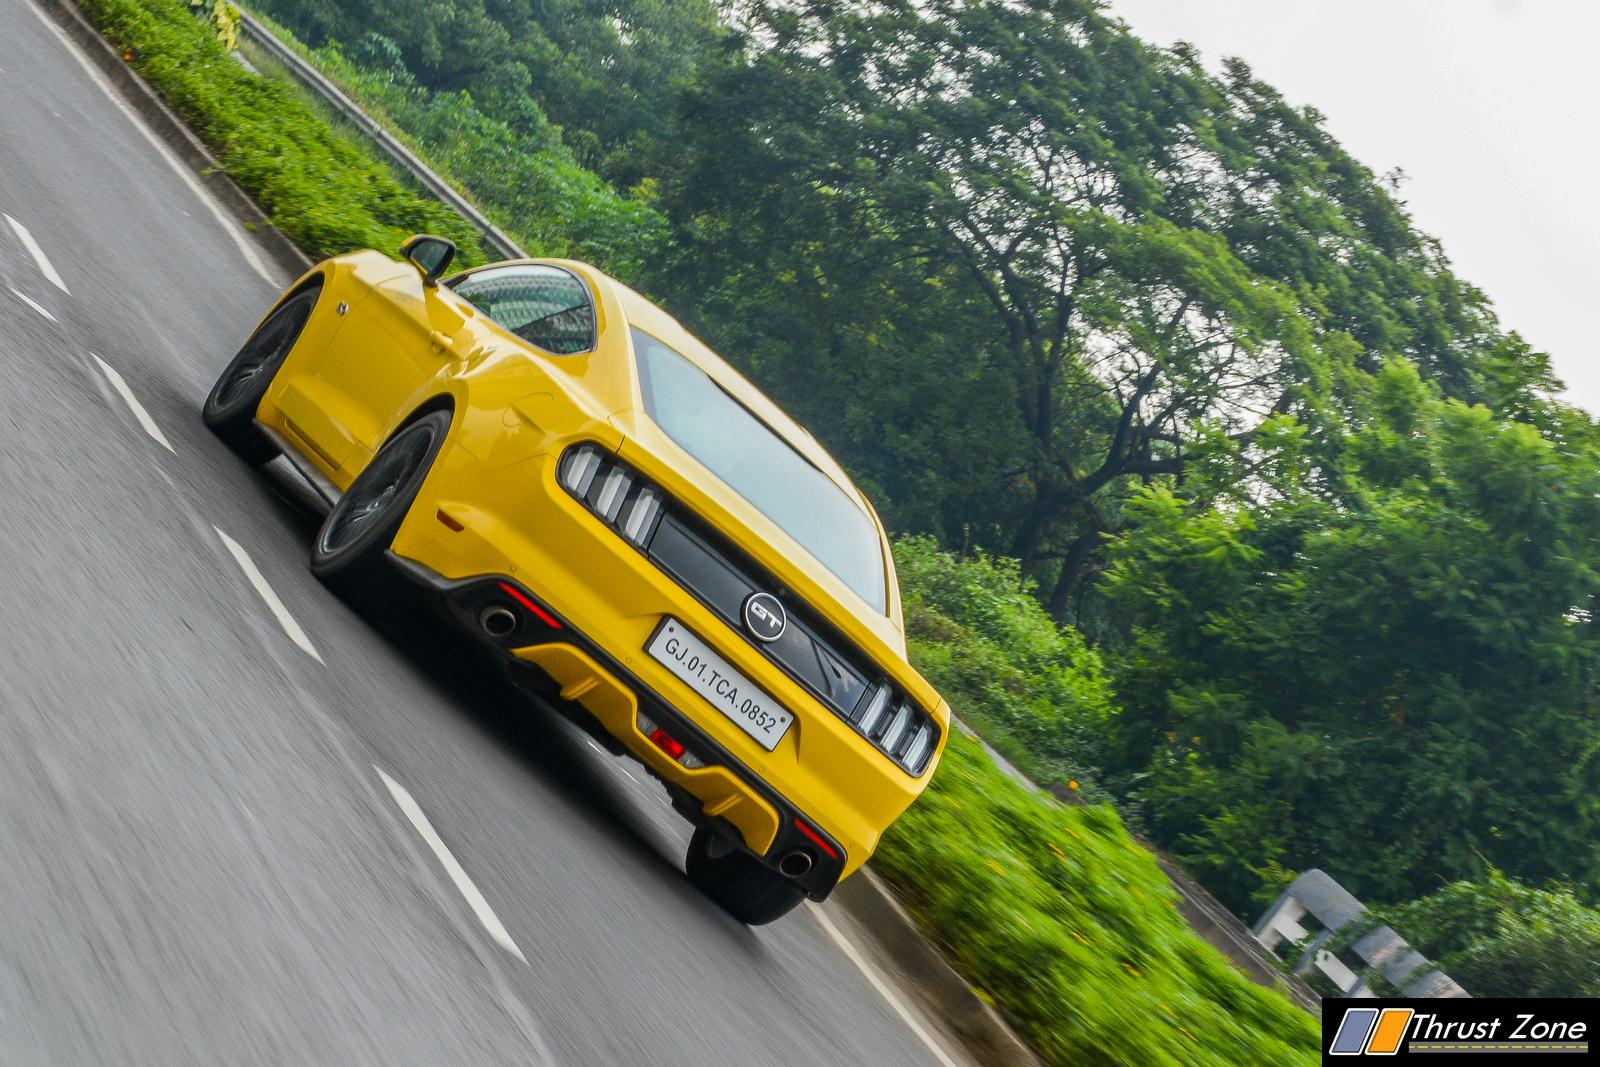 https://www.thrustzone.com/wp-content/uploads/2018/09/Ford-Mustang-India-V8-Review-16.jpg